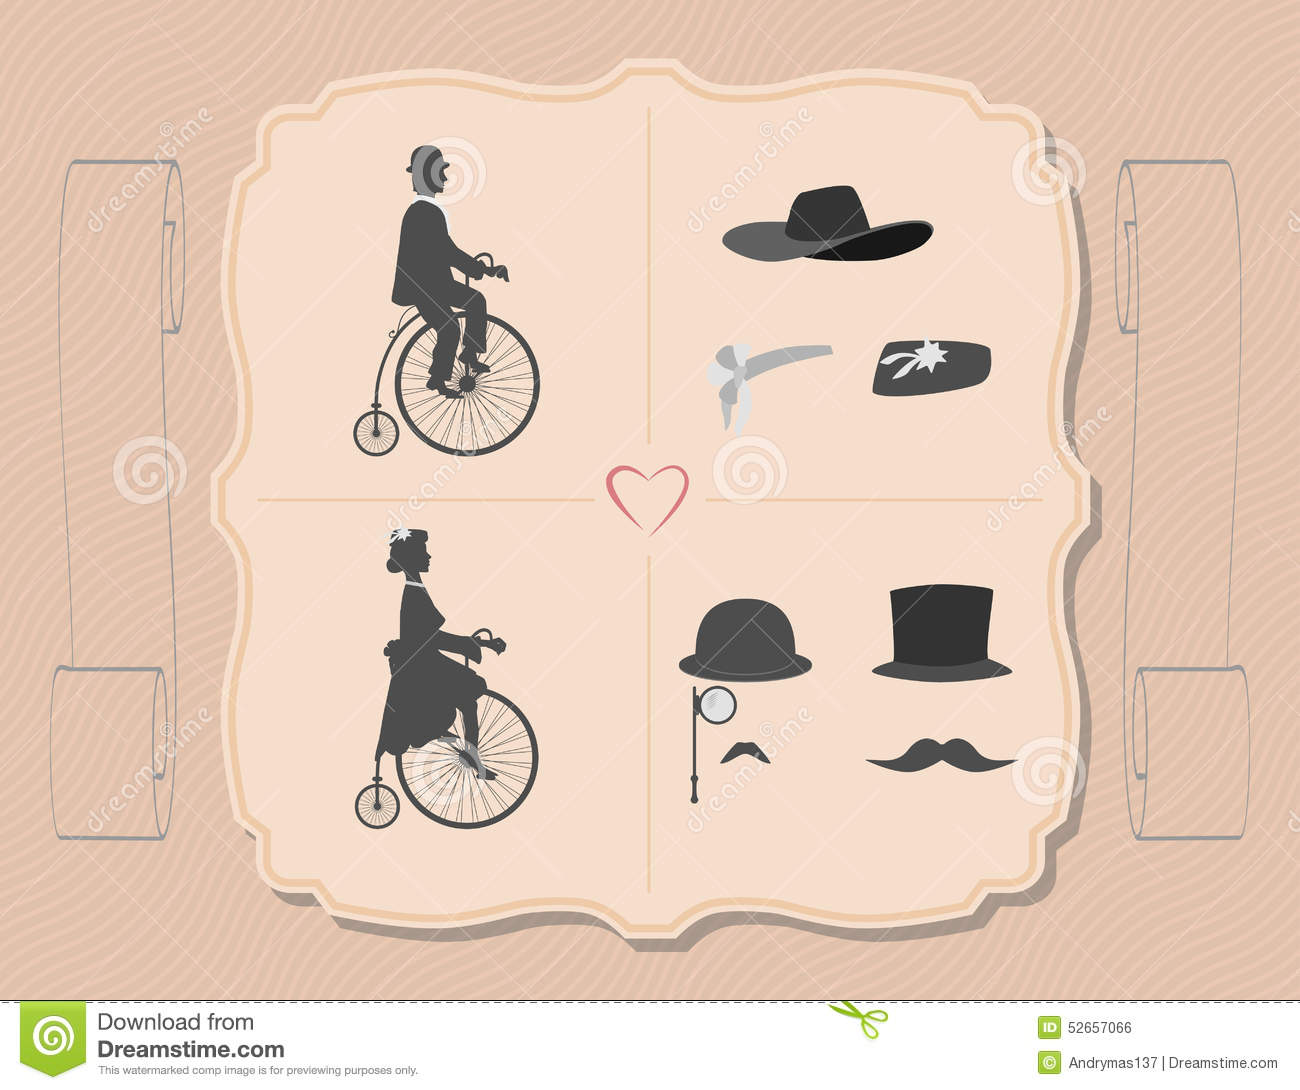 the lady and gentleman on cycling stock vector illustration of